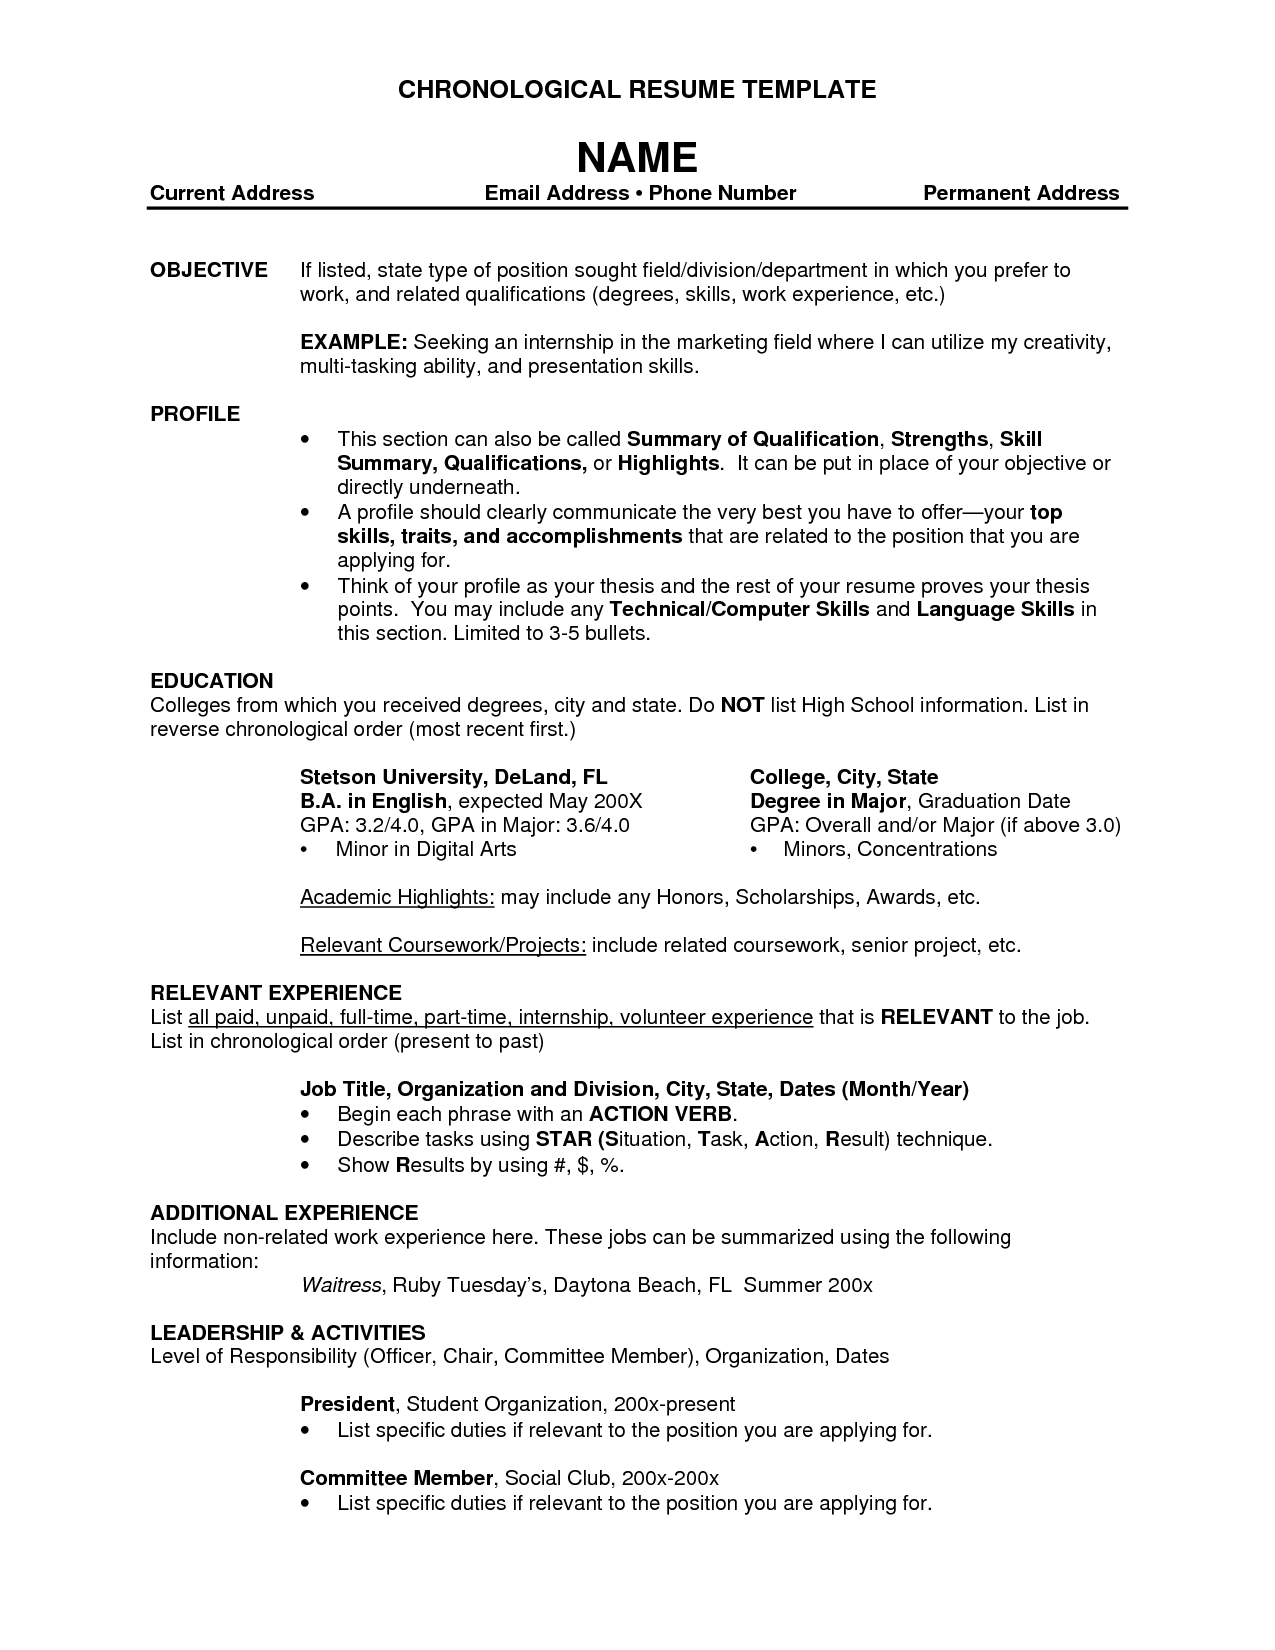 job resume topics pega architect sample nuclear power best staff accountant example livecareer title essay cover resume templates wordresume - Resume Format Template Word